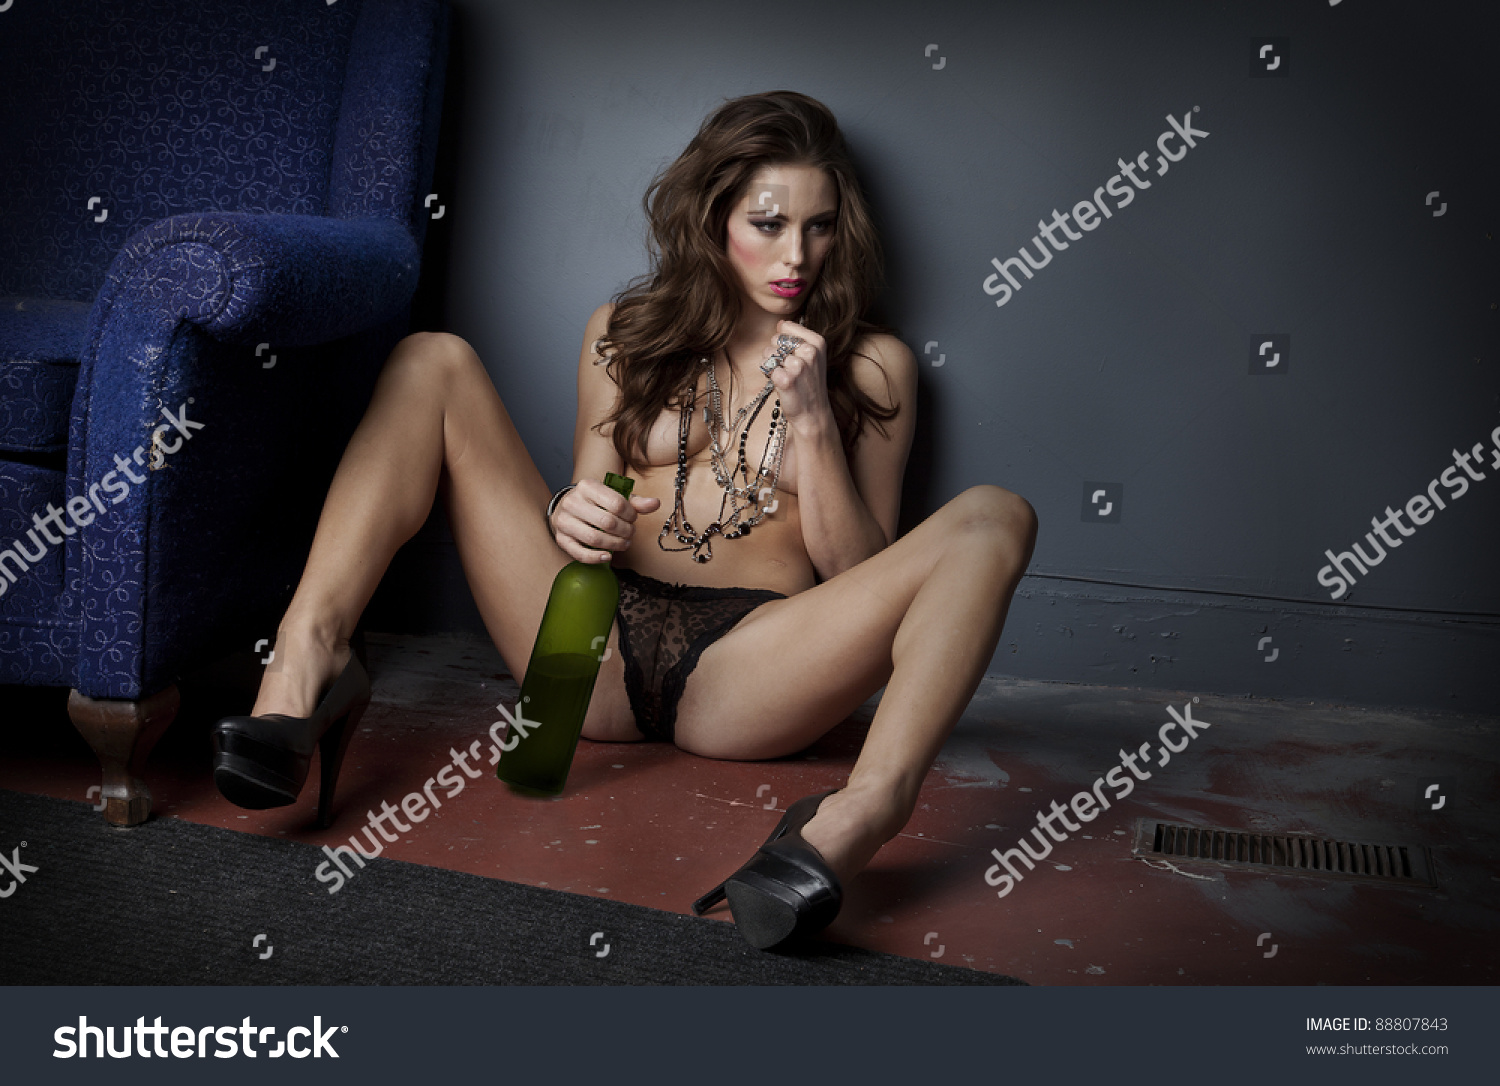 Apologise, but, wine naked nude woman agree with